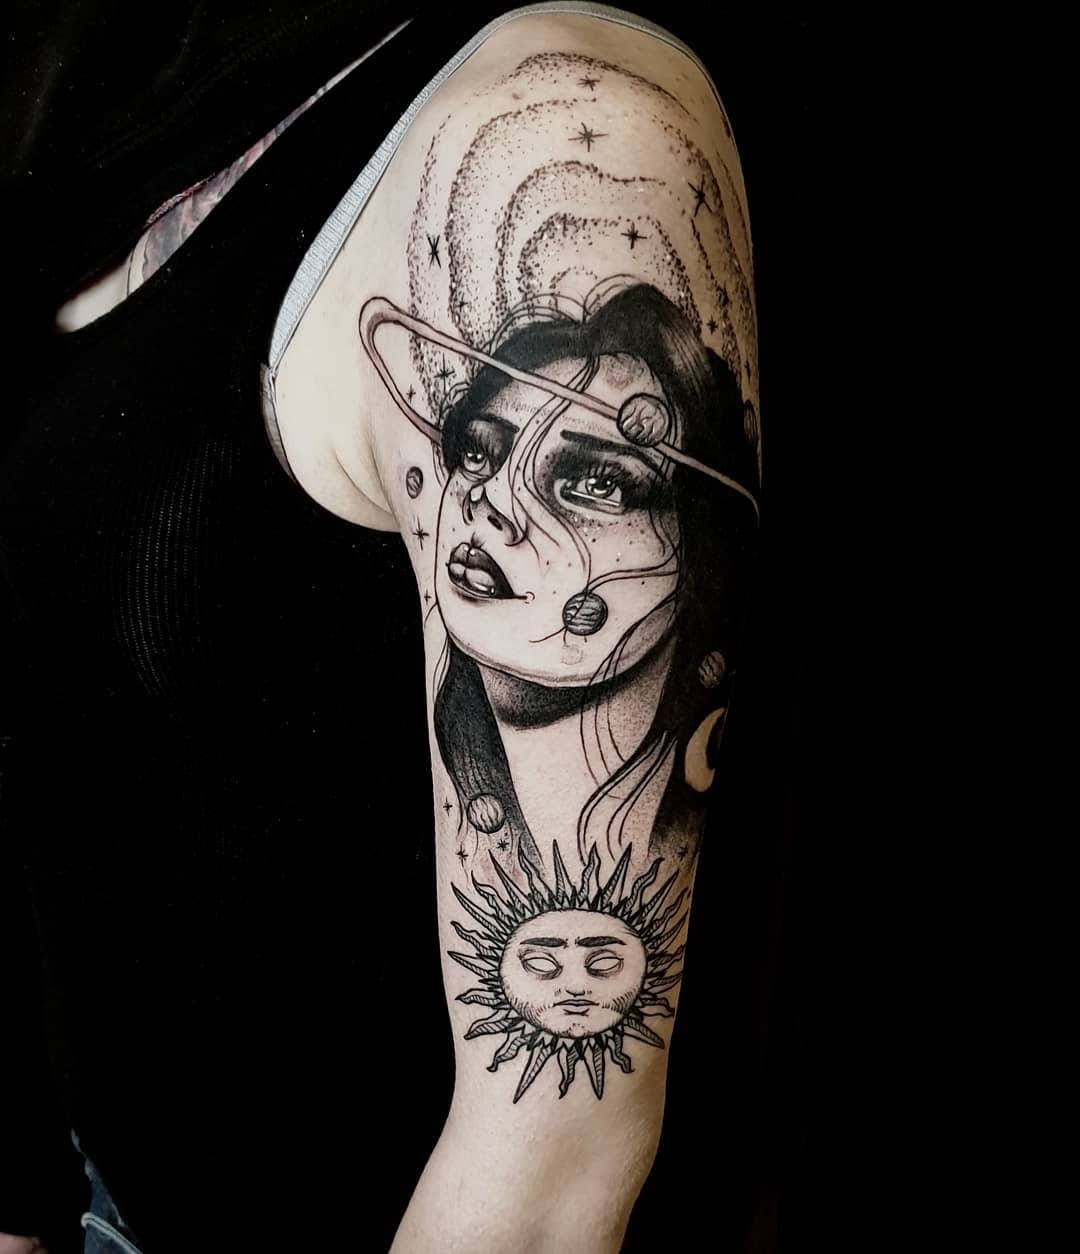 Tattoo Anansi München Artist David neoraditional black and grey portrait woman Frau sun universe